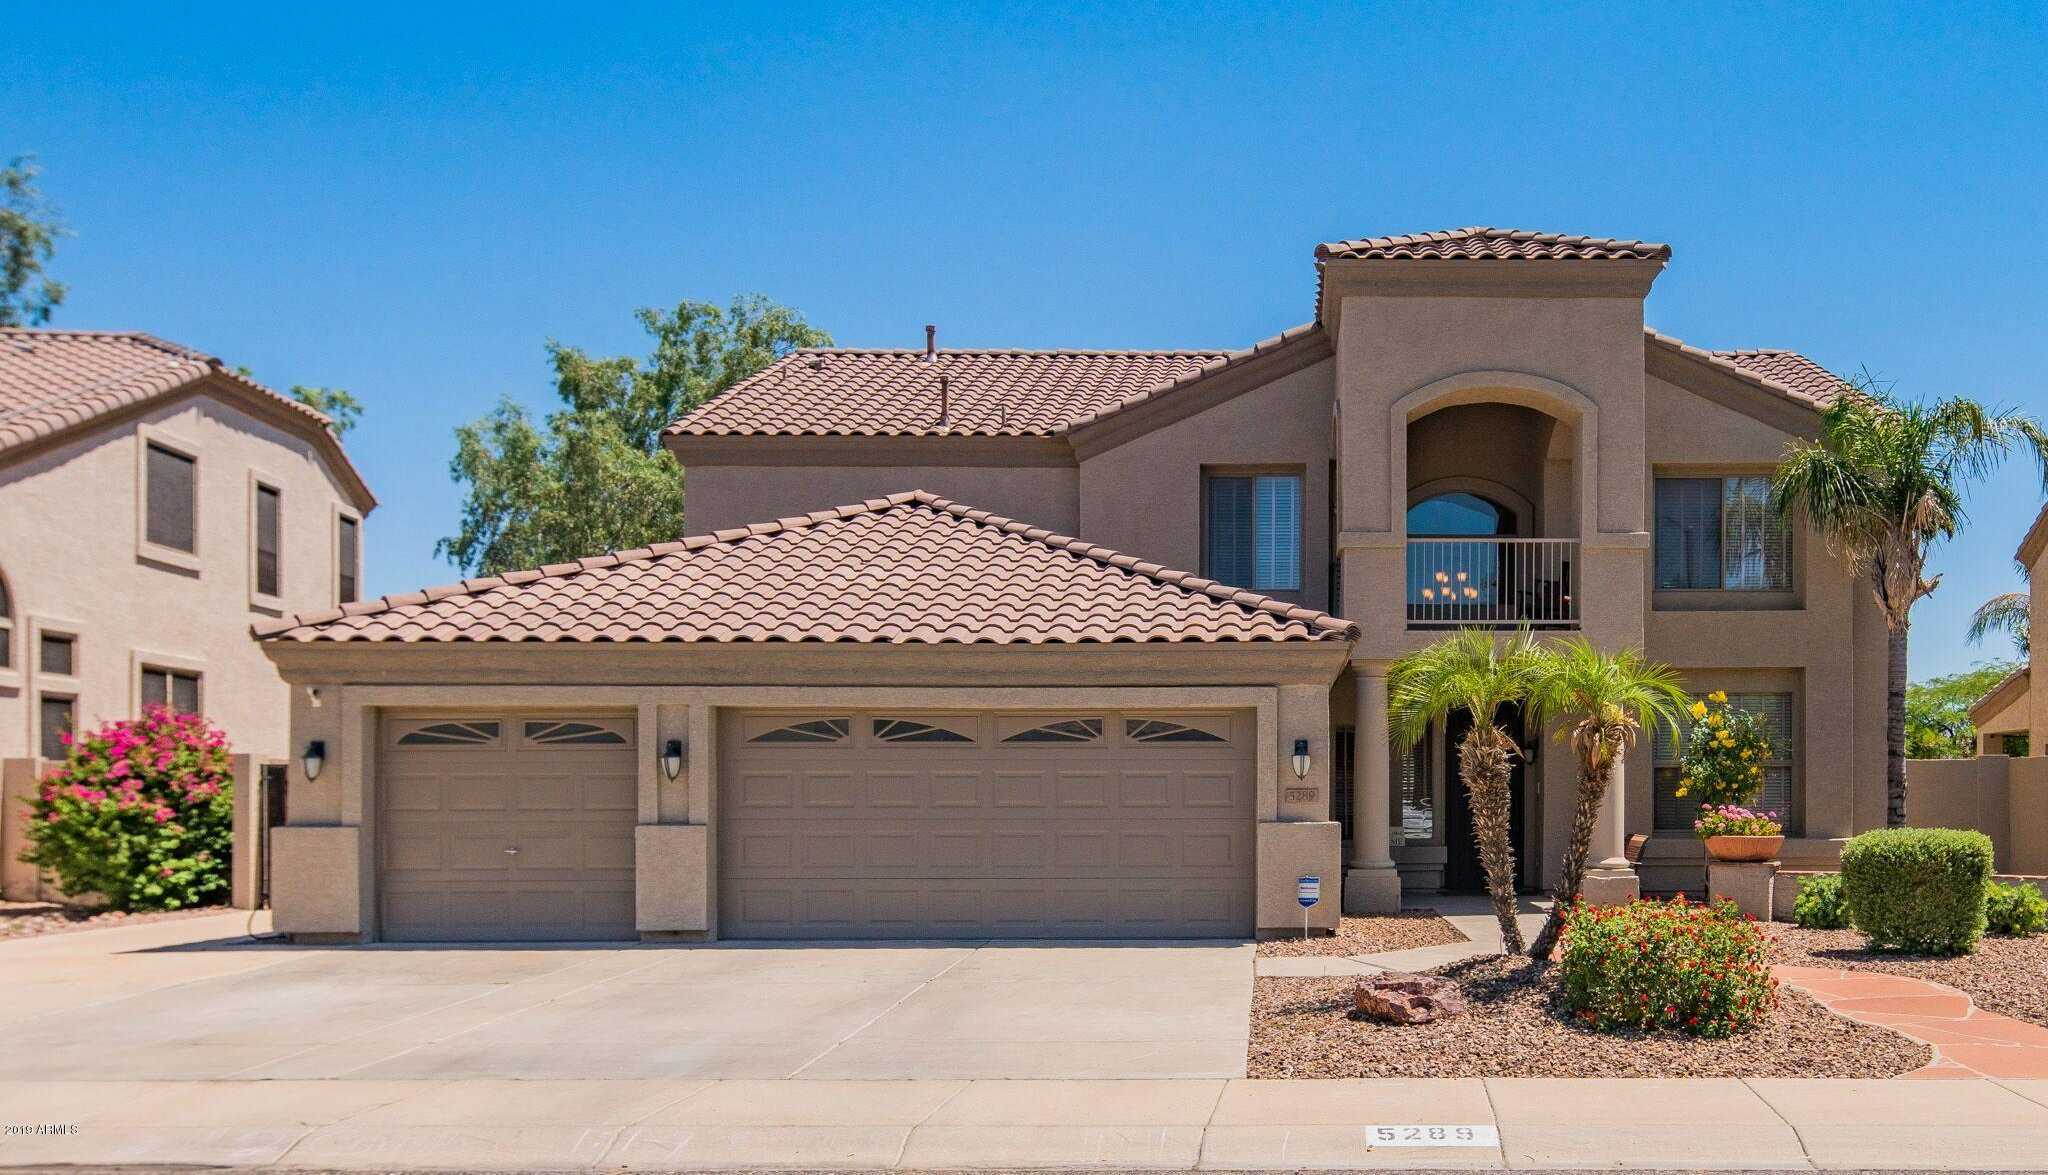 $429,900 - 4Br/3Ba - Home for Sale in Touchstone, Glendale